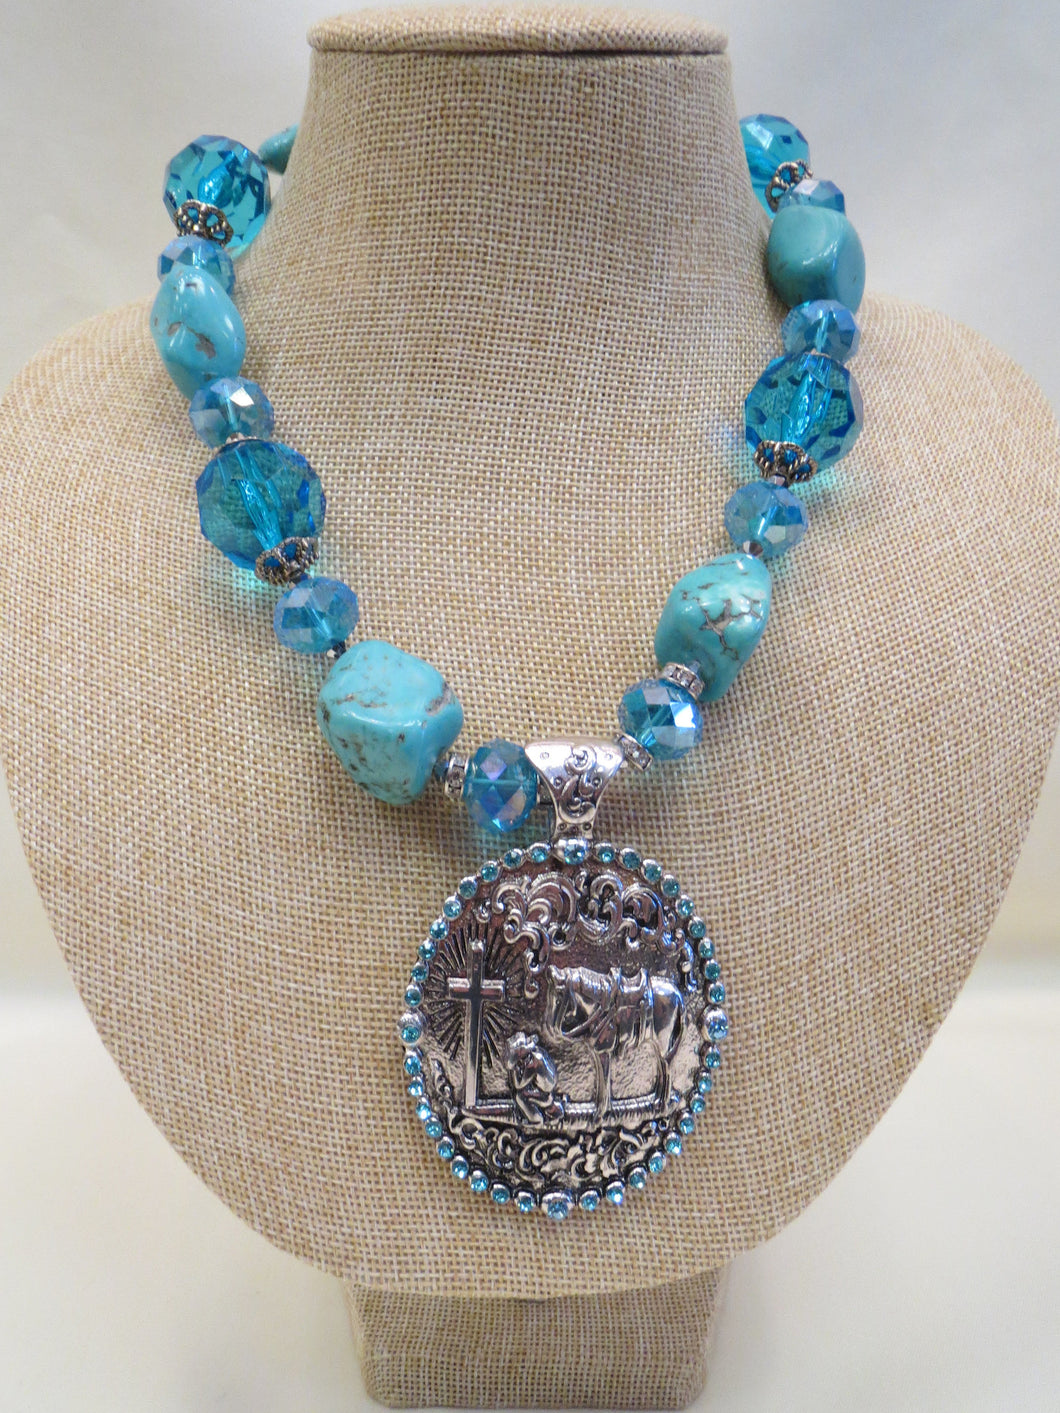 Turquoise Beaded Necklace w/Cowboy Cross Necklace | All Dec'd Out